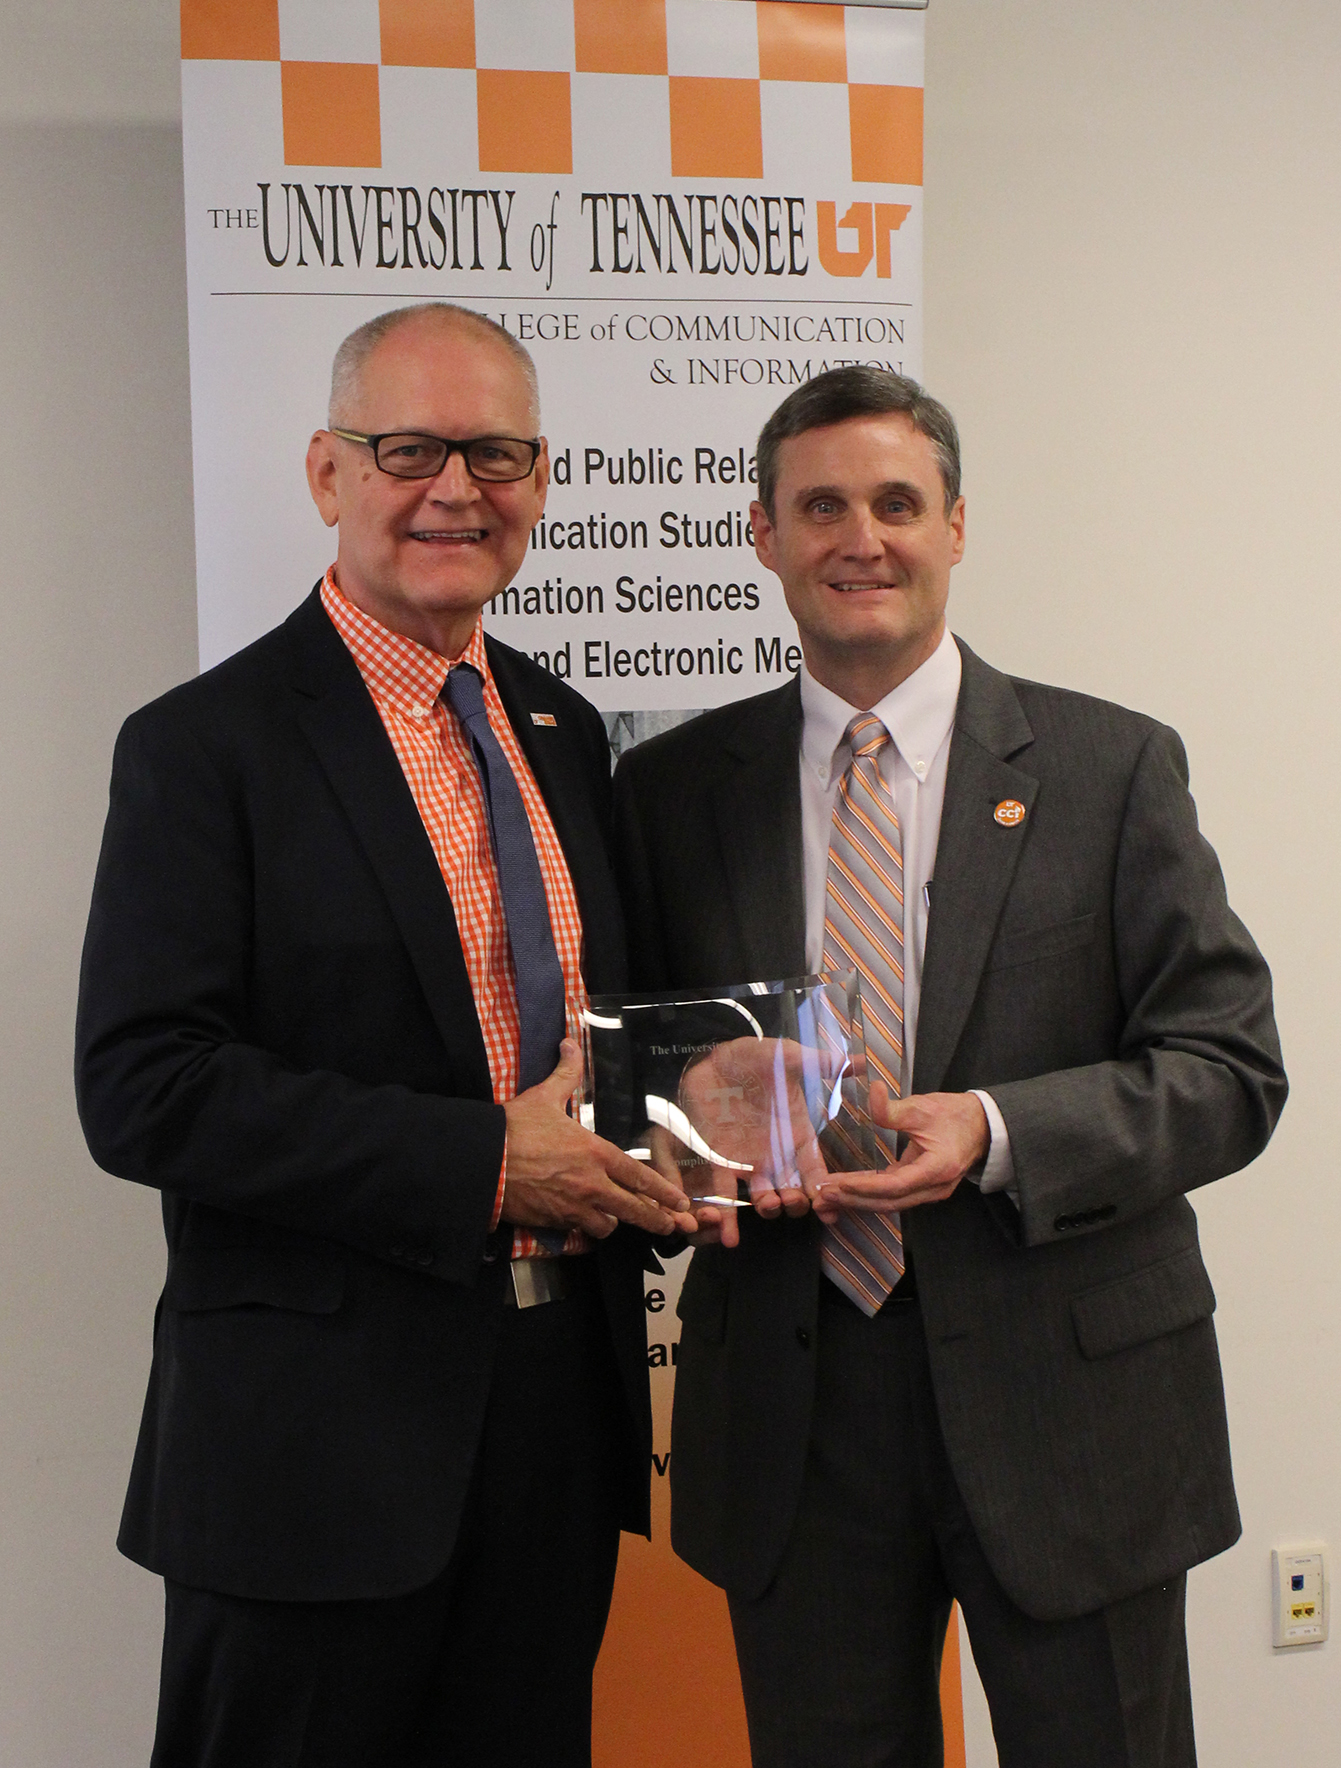 Wendell Potter received award from Dean Wirth